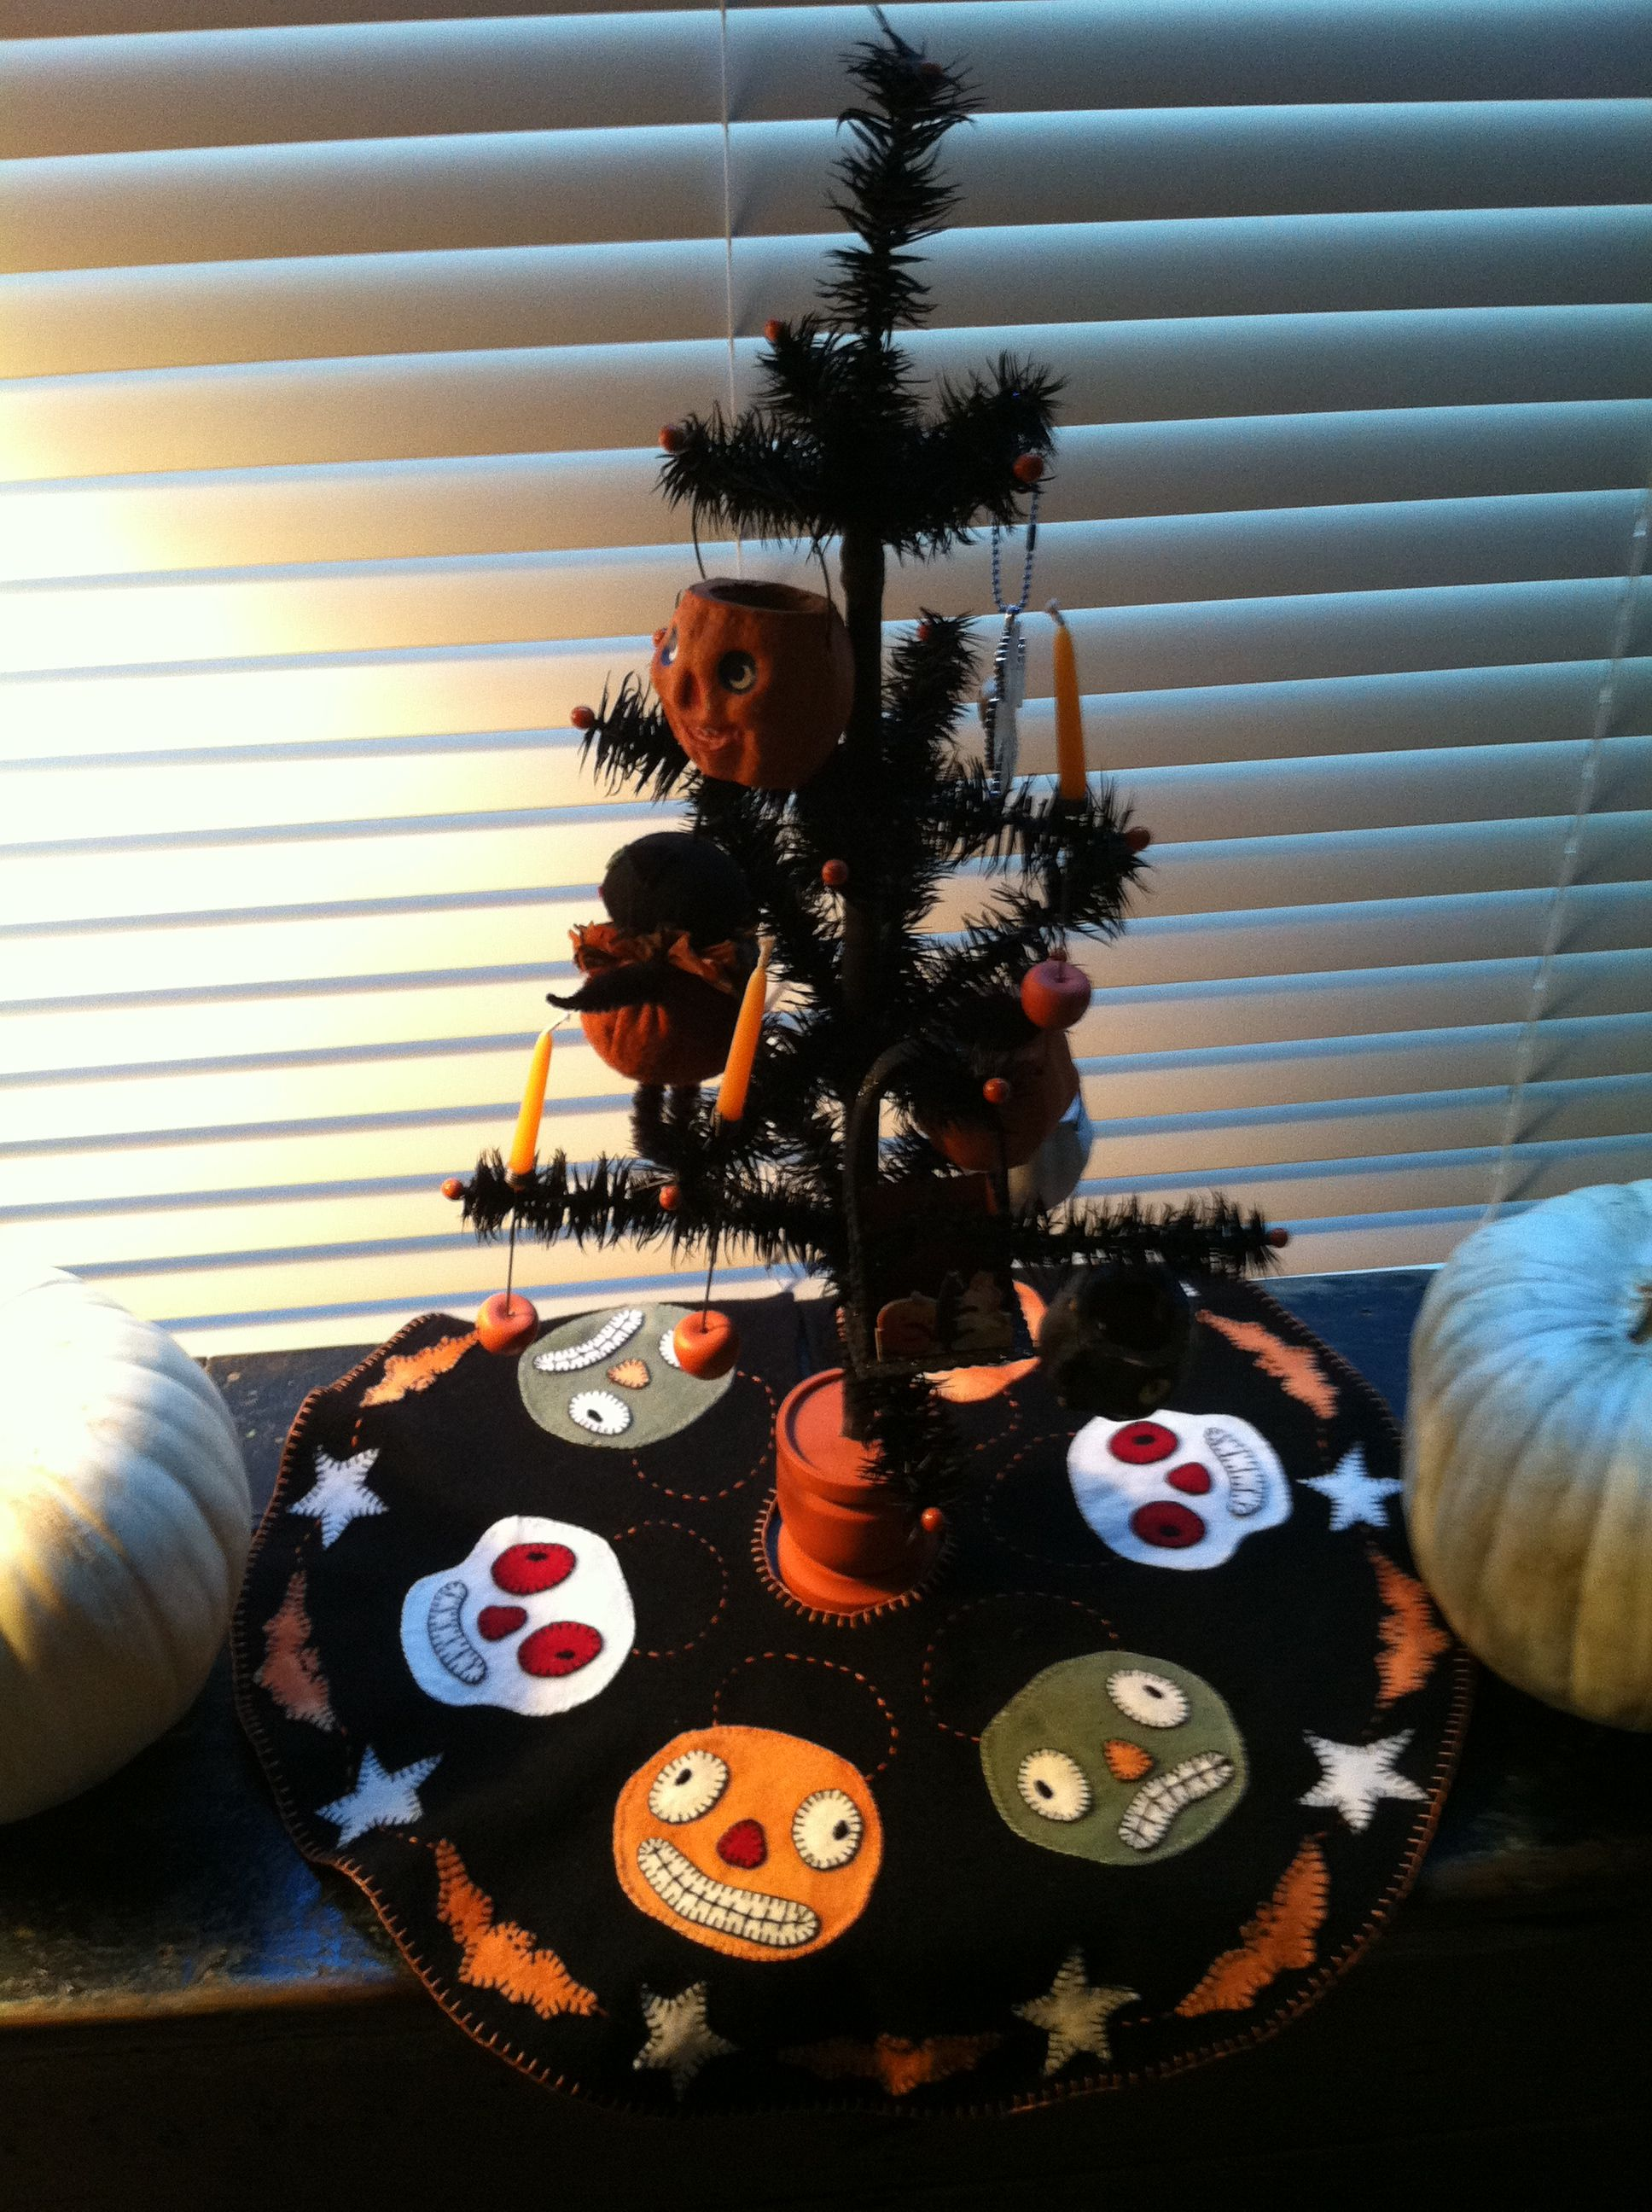 Halloween tree skirt for black feather tree. Cute